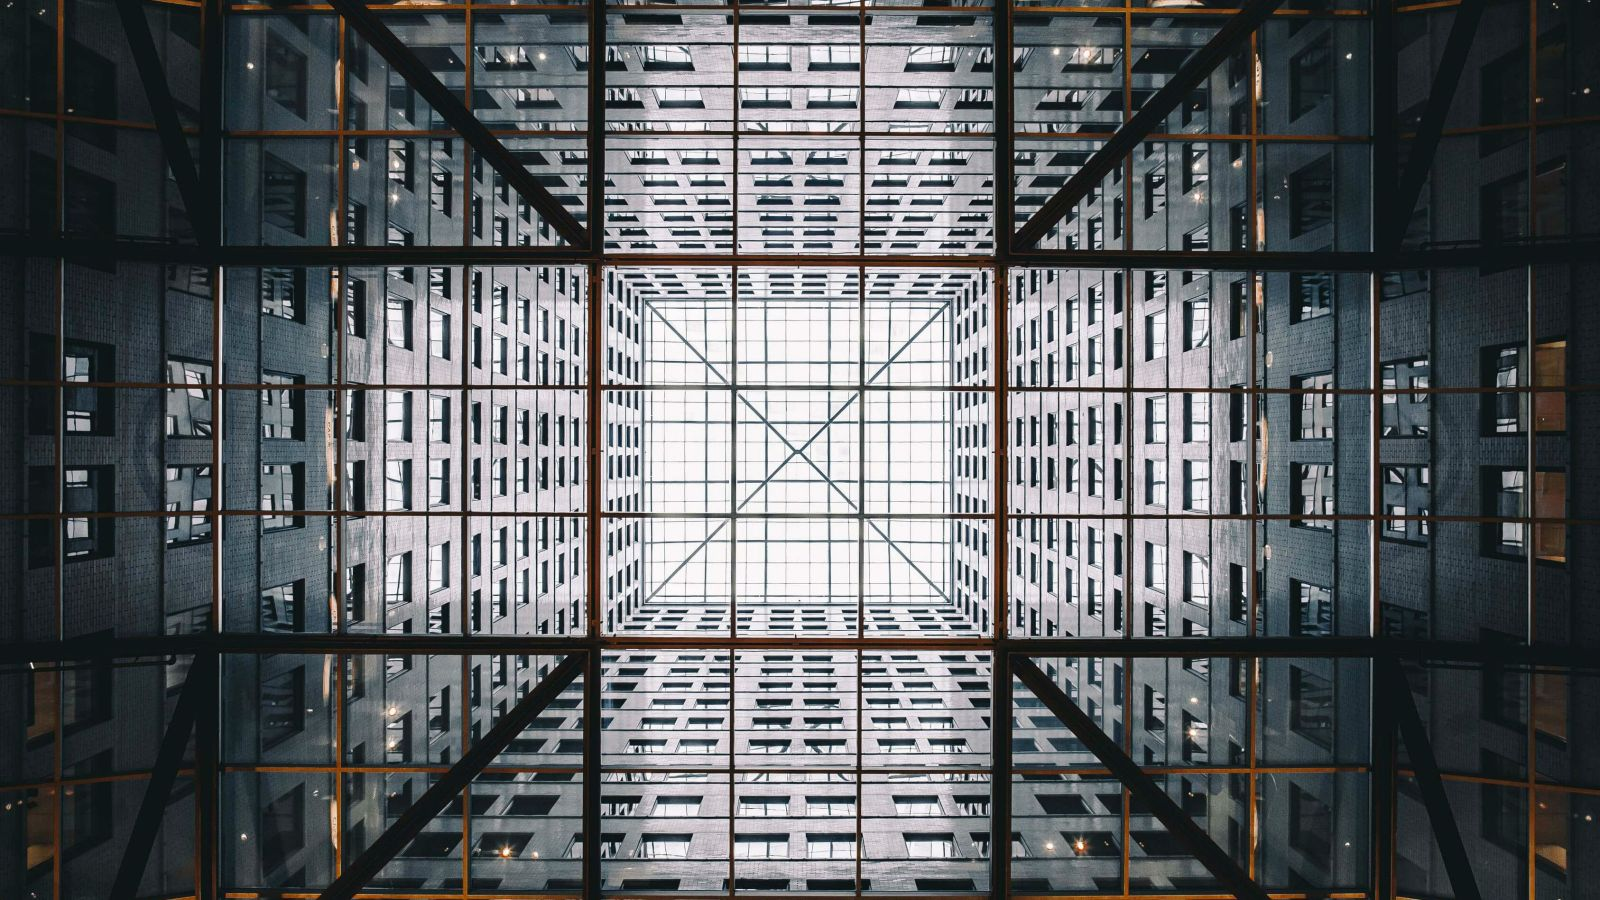 A perfect grid within a building's architecture.